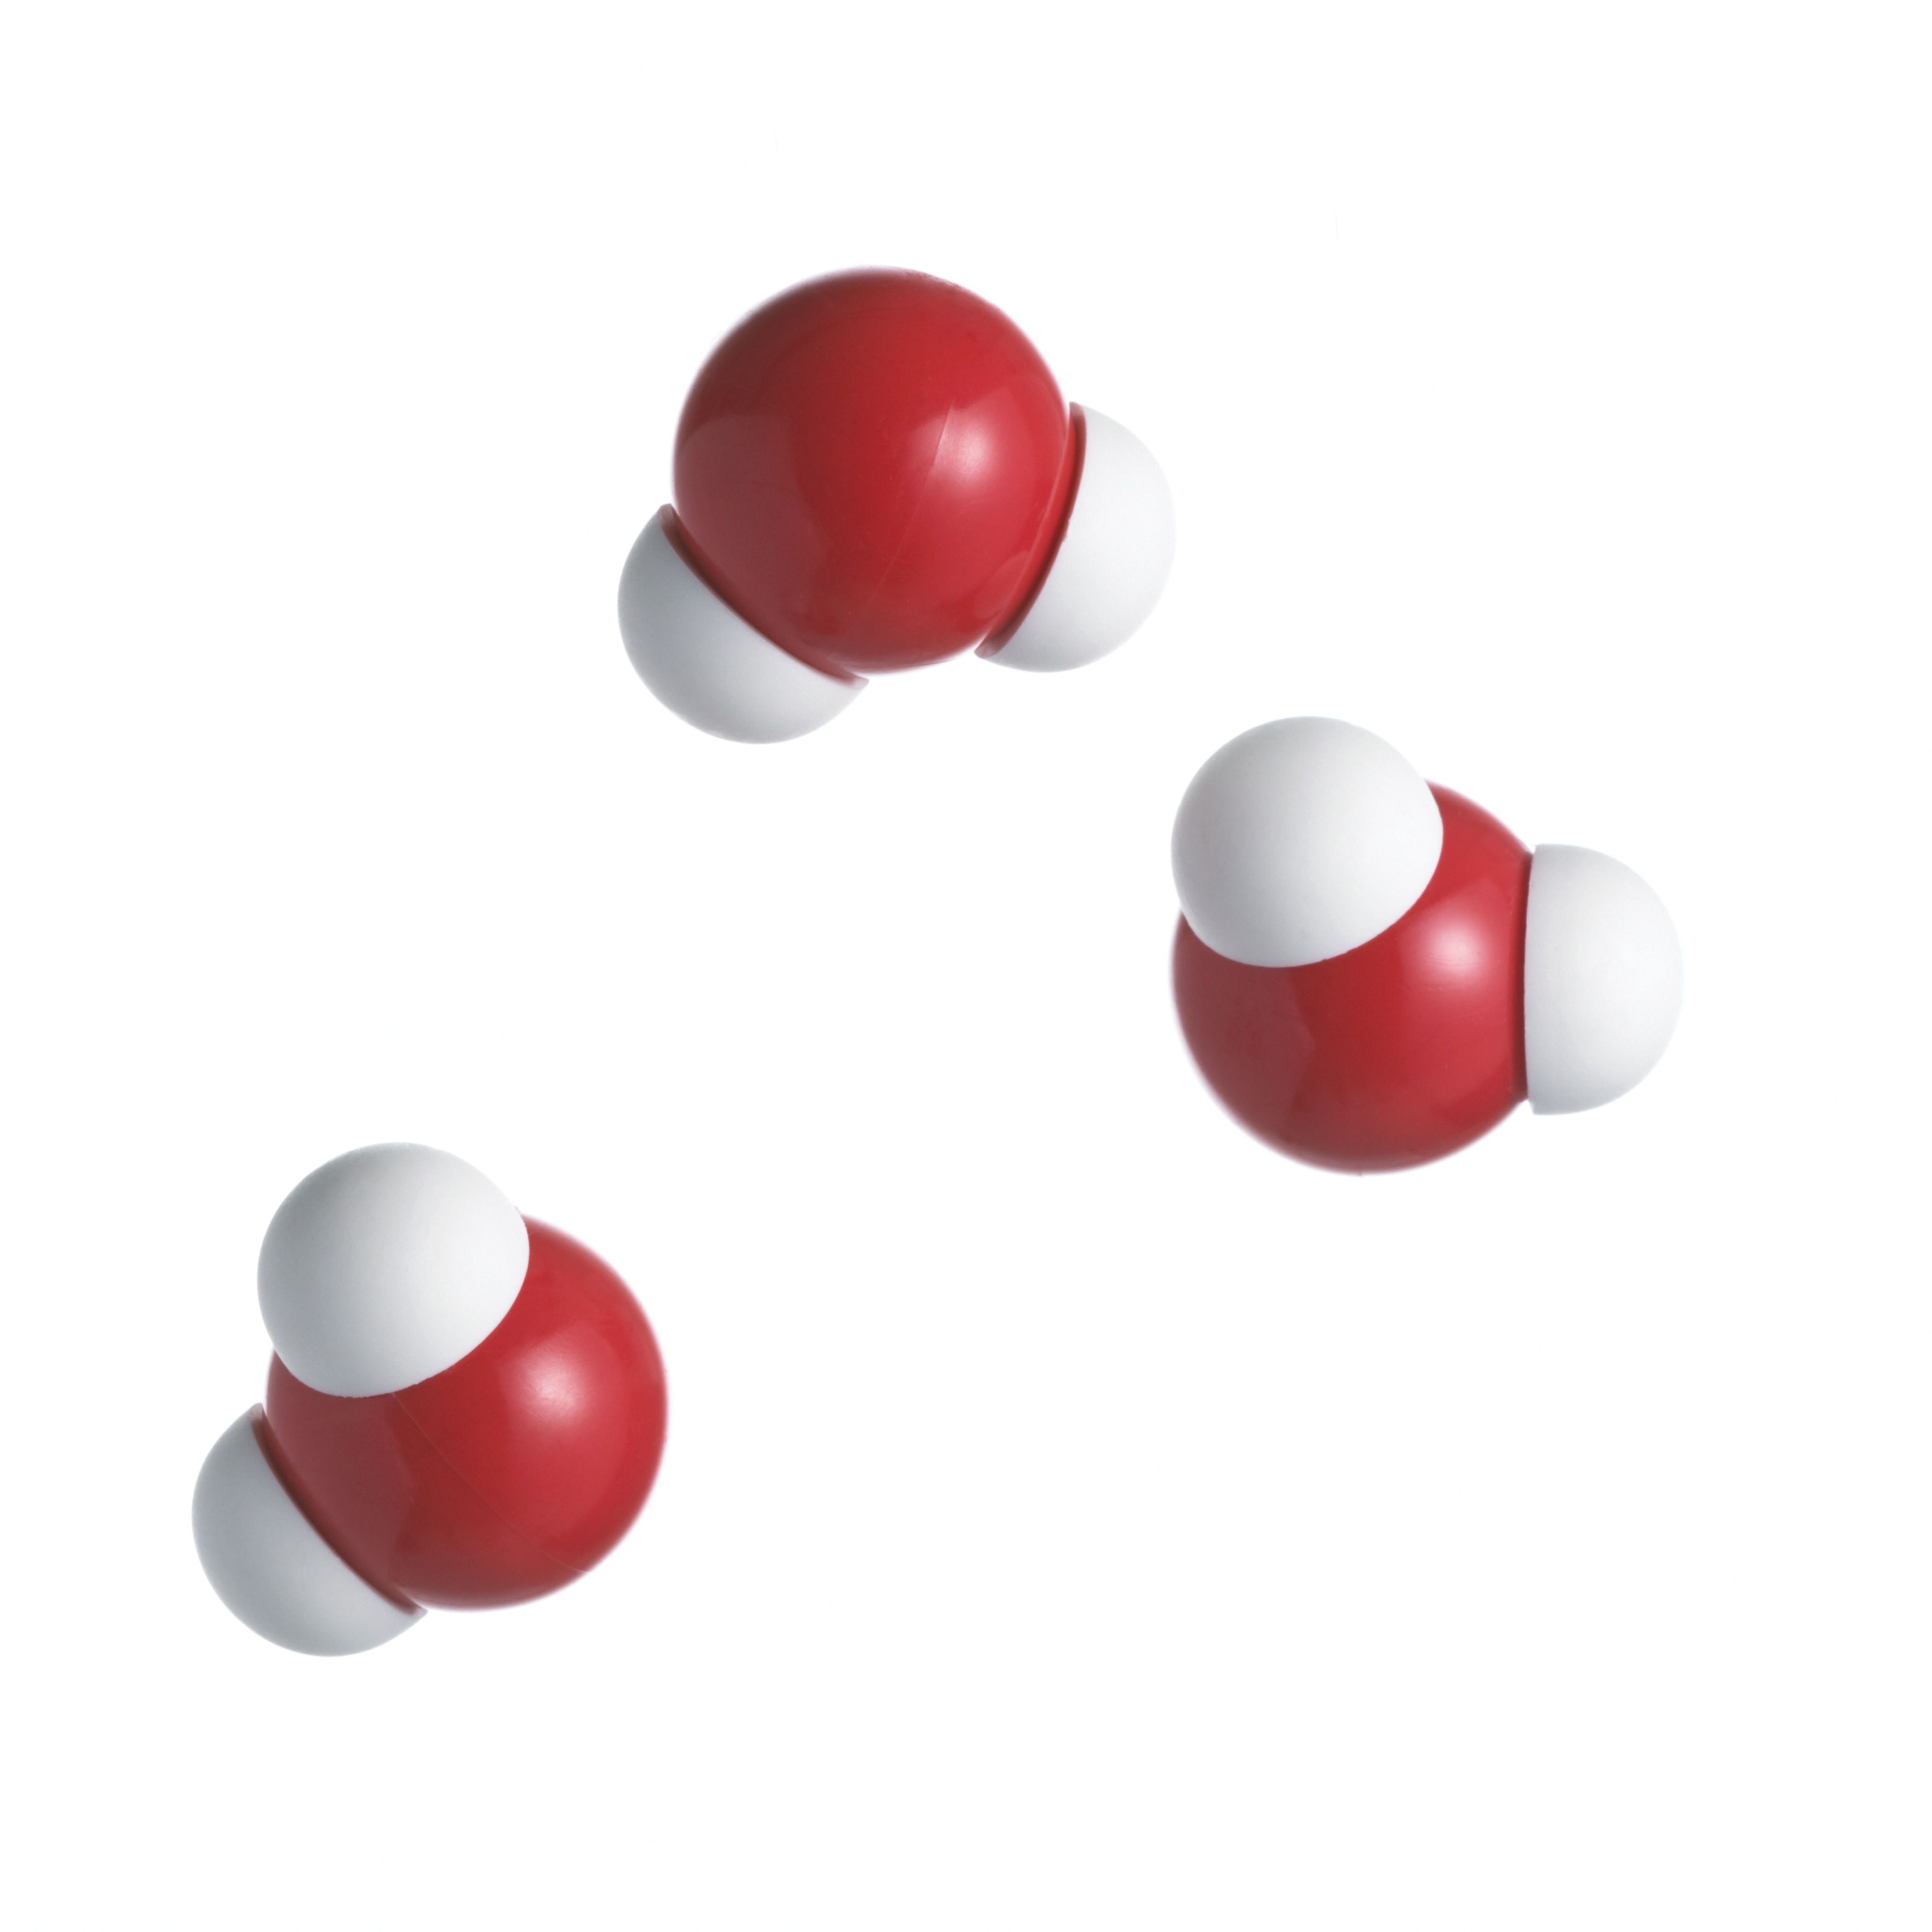 What Causes Hydrogen Bonding?